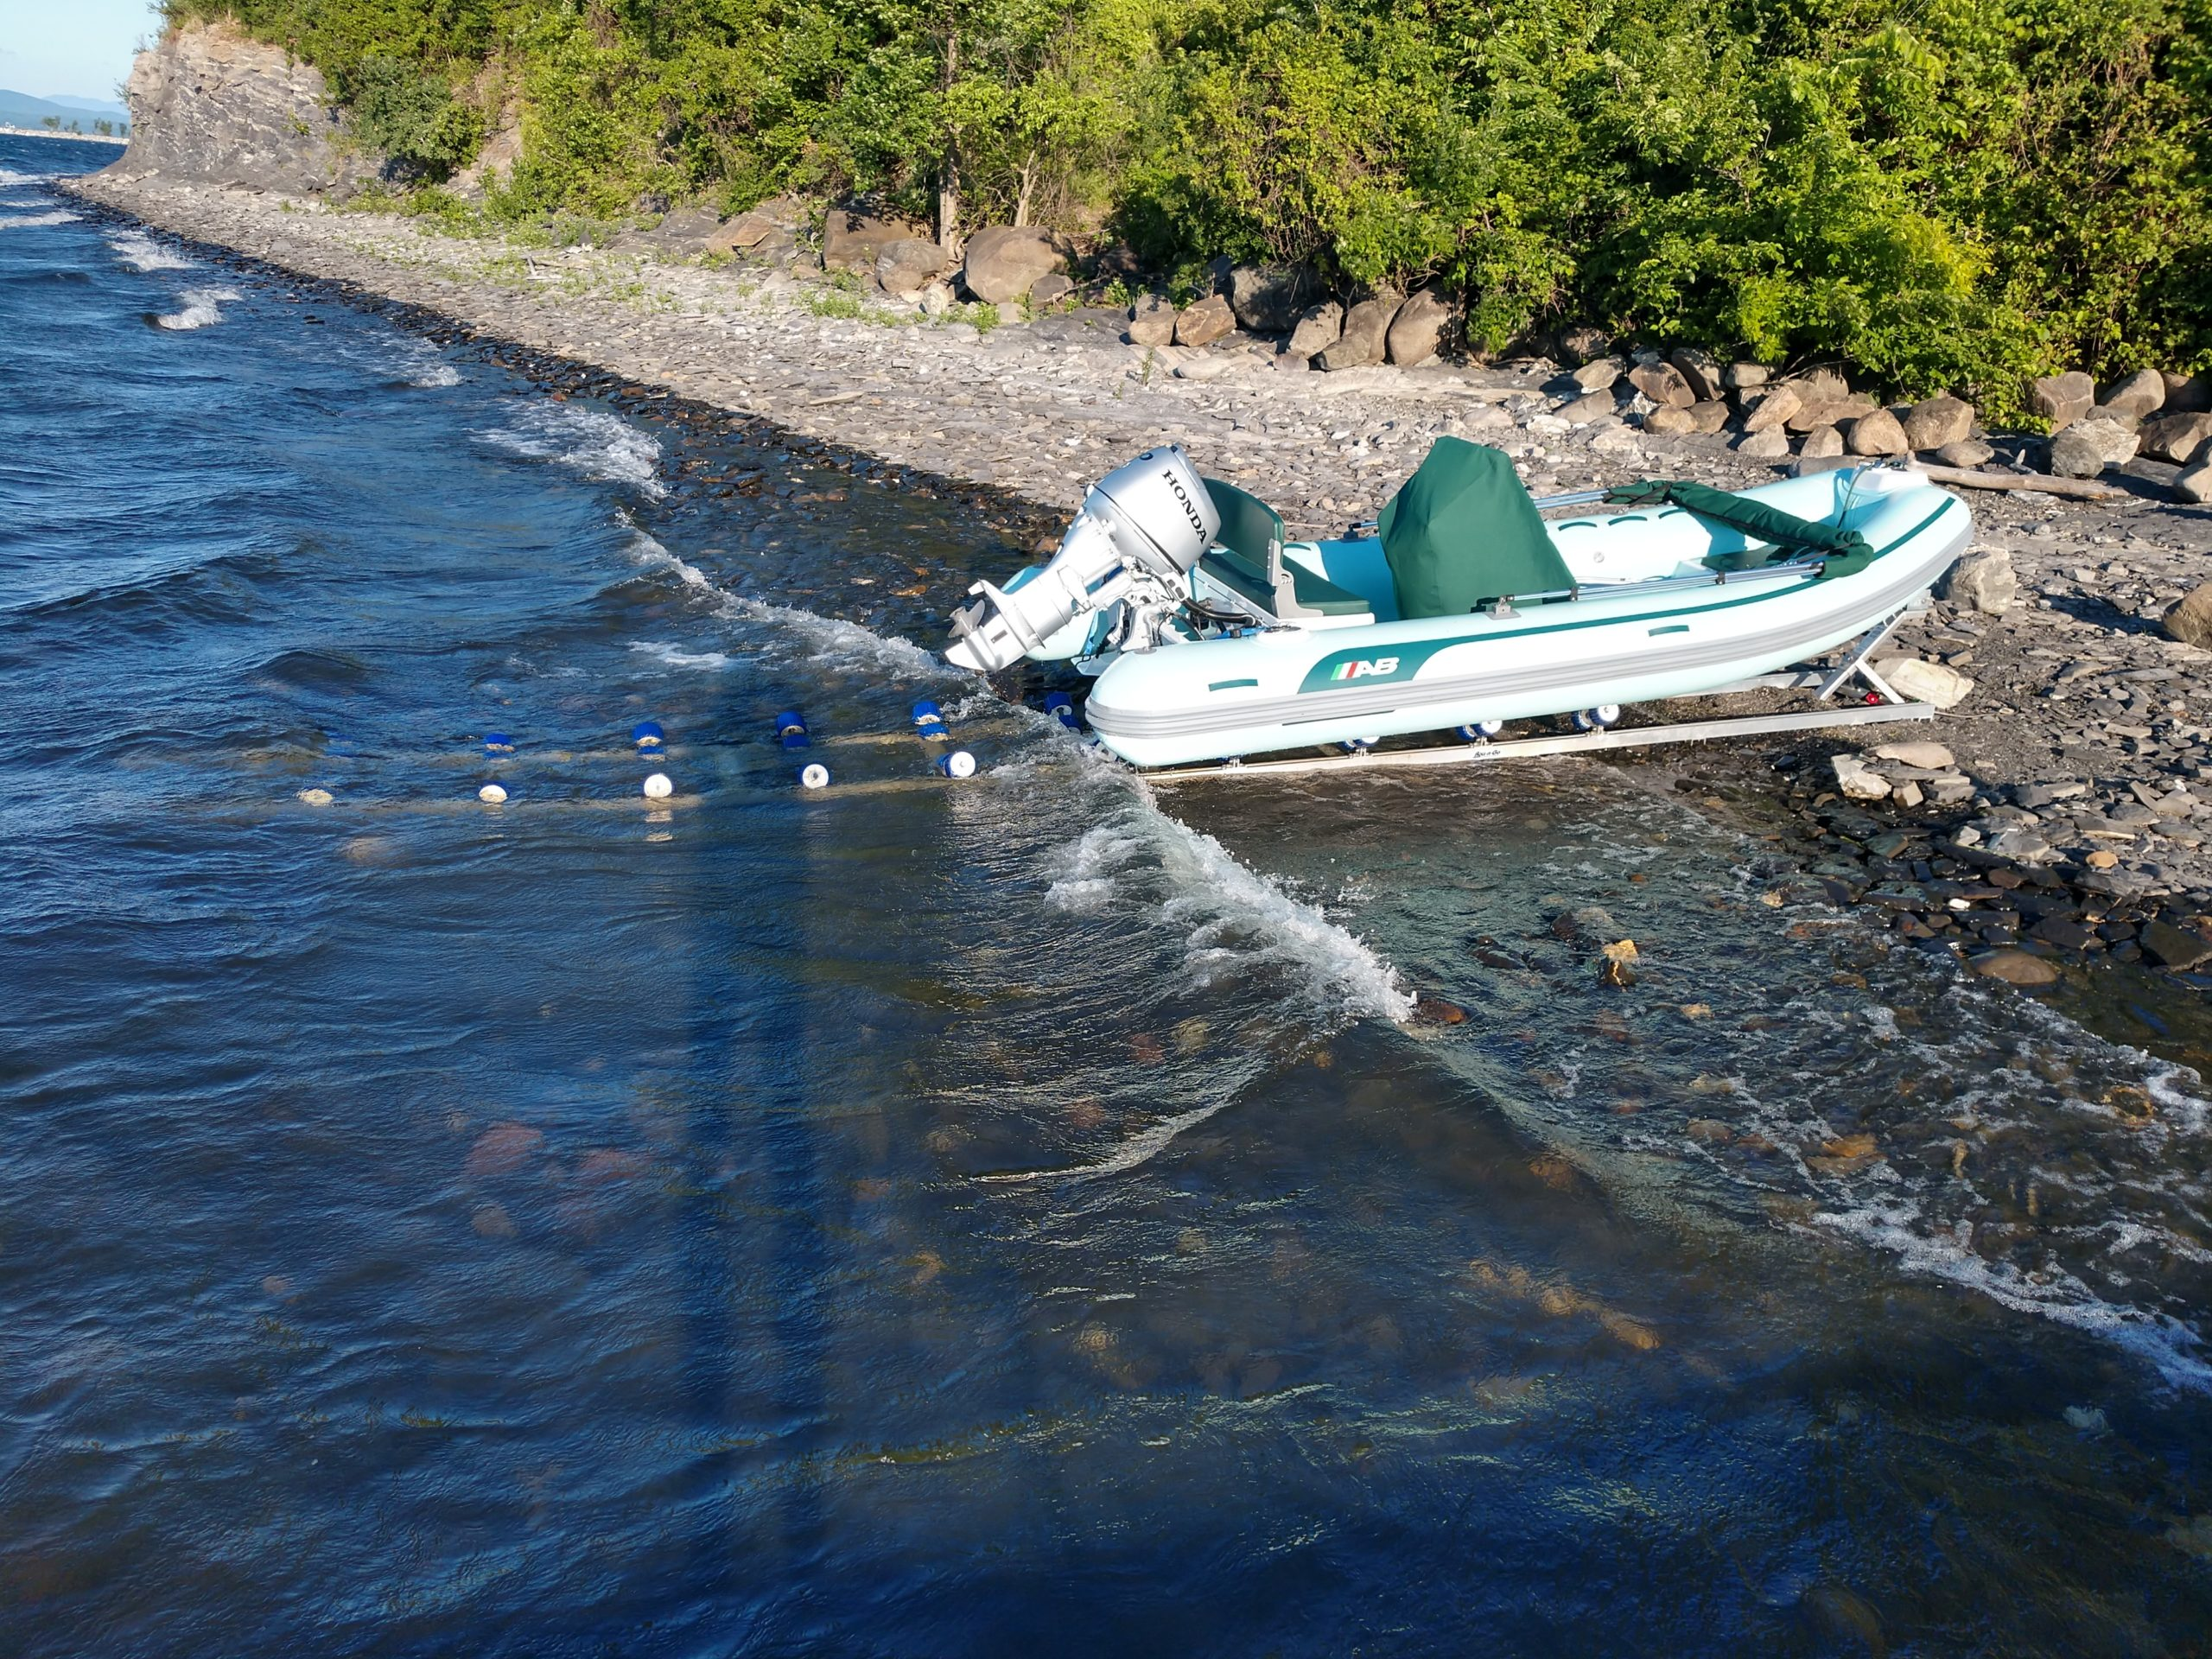 boat ramps for boating enthusiasts